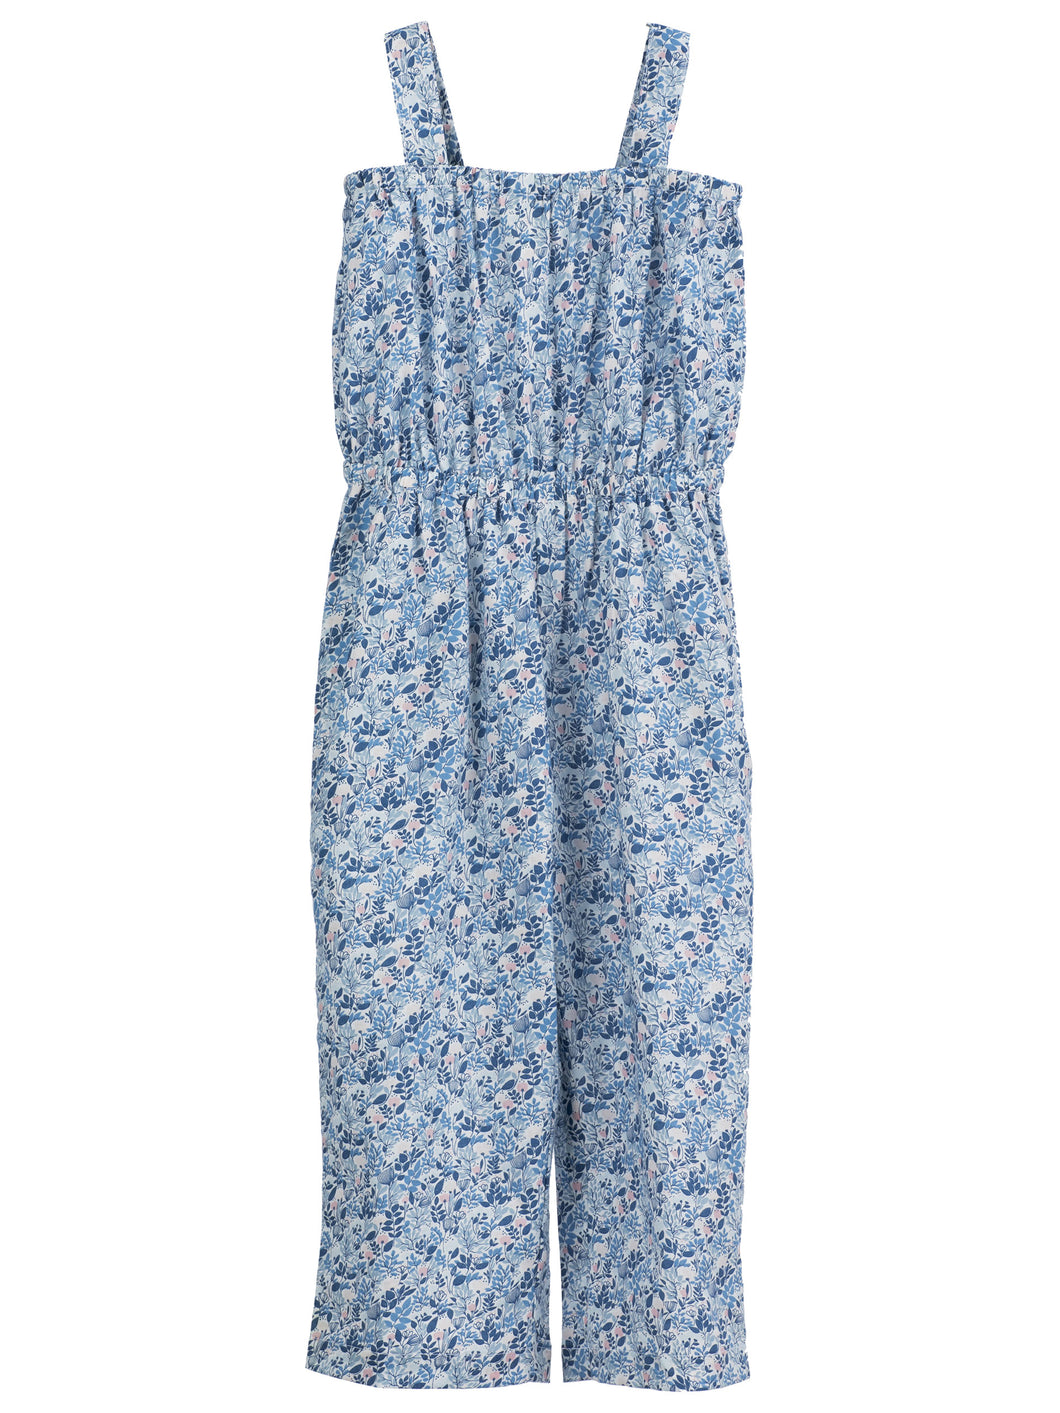 Serendipity Jumpsuit - Flowerfield